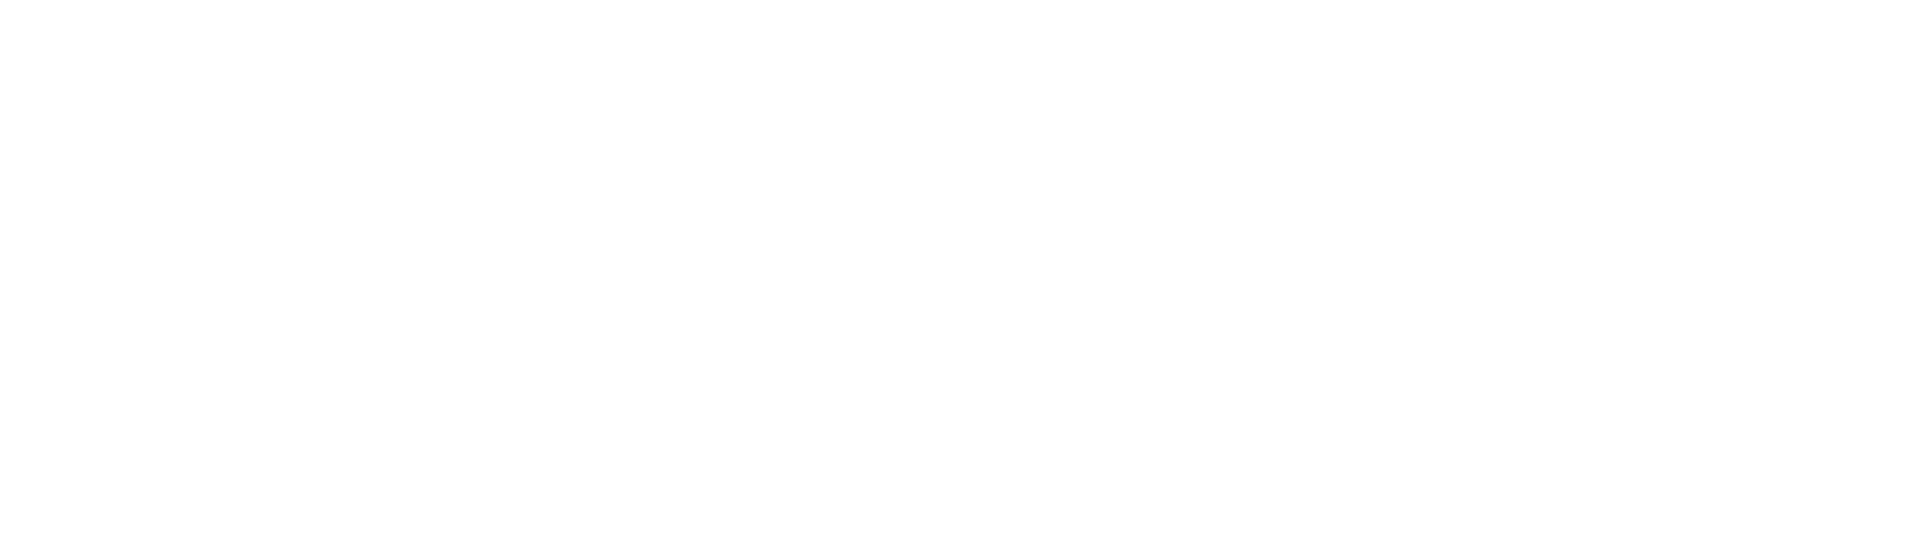 Pure Medical - Health is Wealth